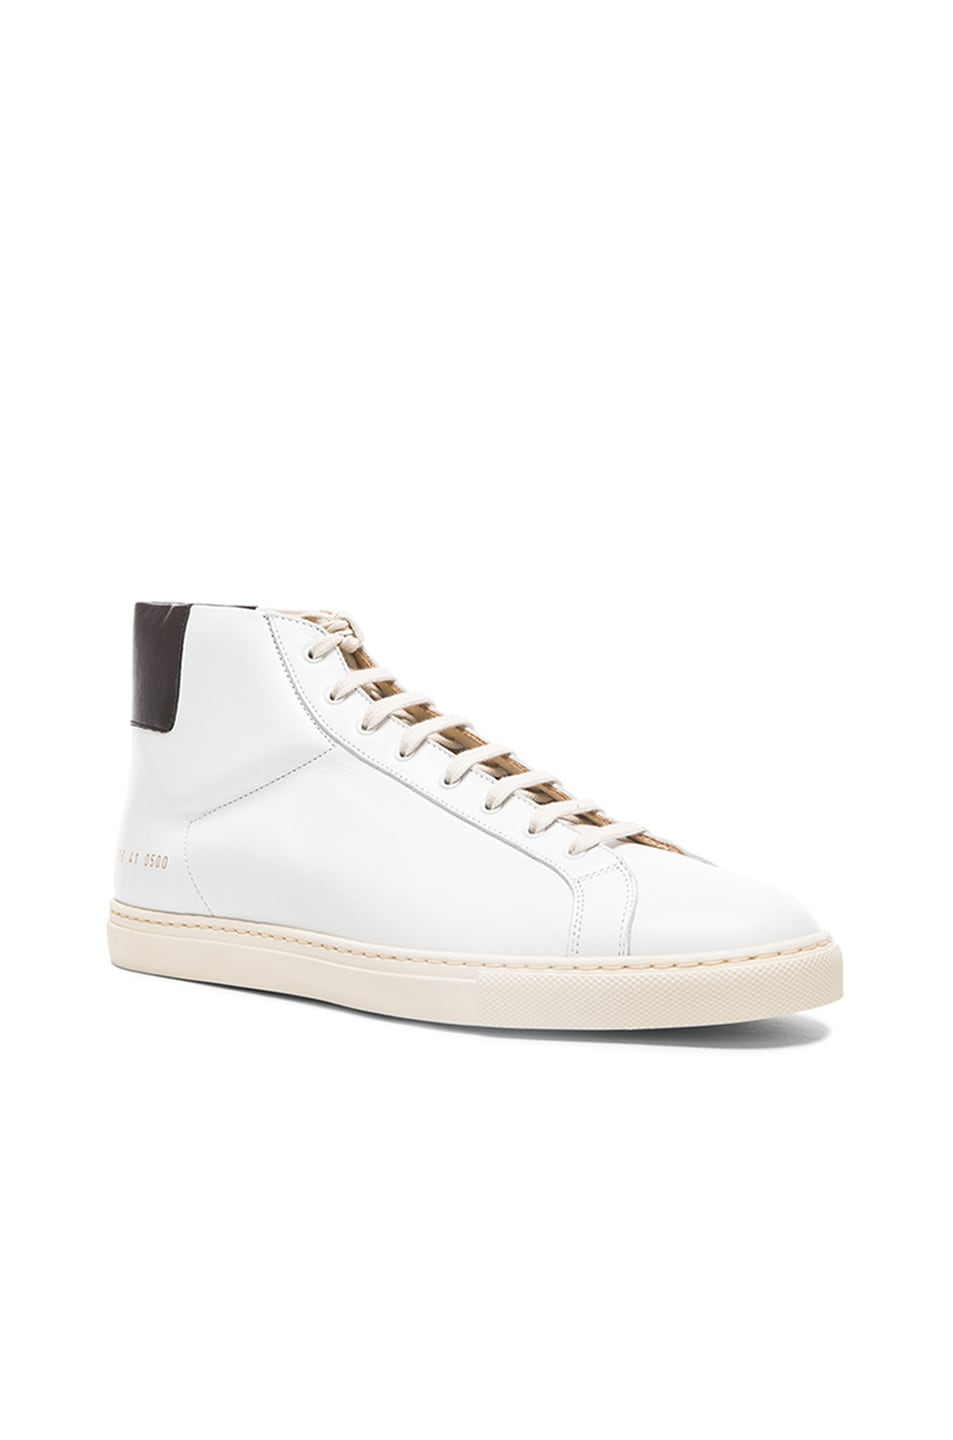 2e8d36791a602 Image 1 of Common Projects Achilles Retro Leather High Tops in Black   White